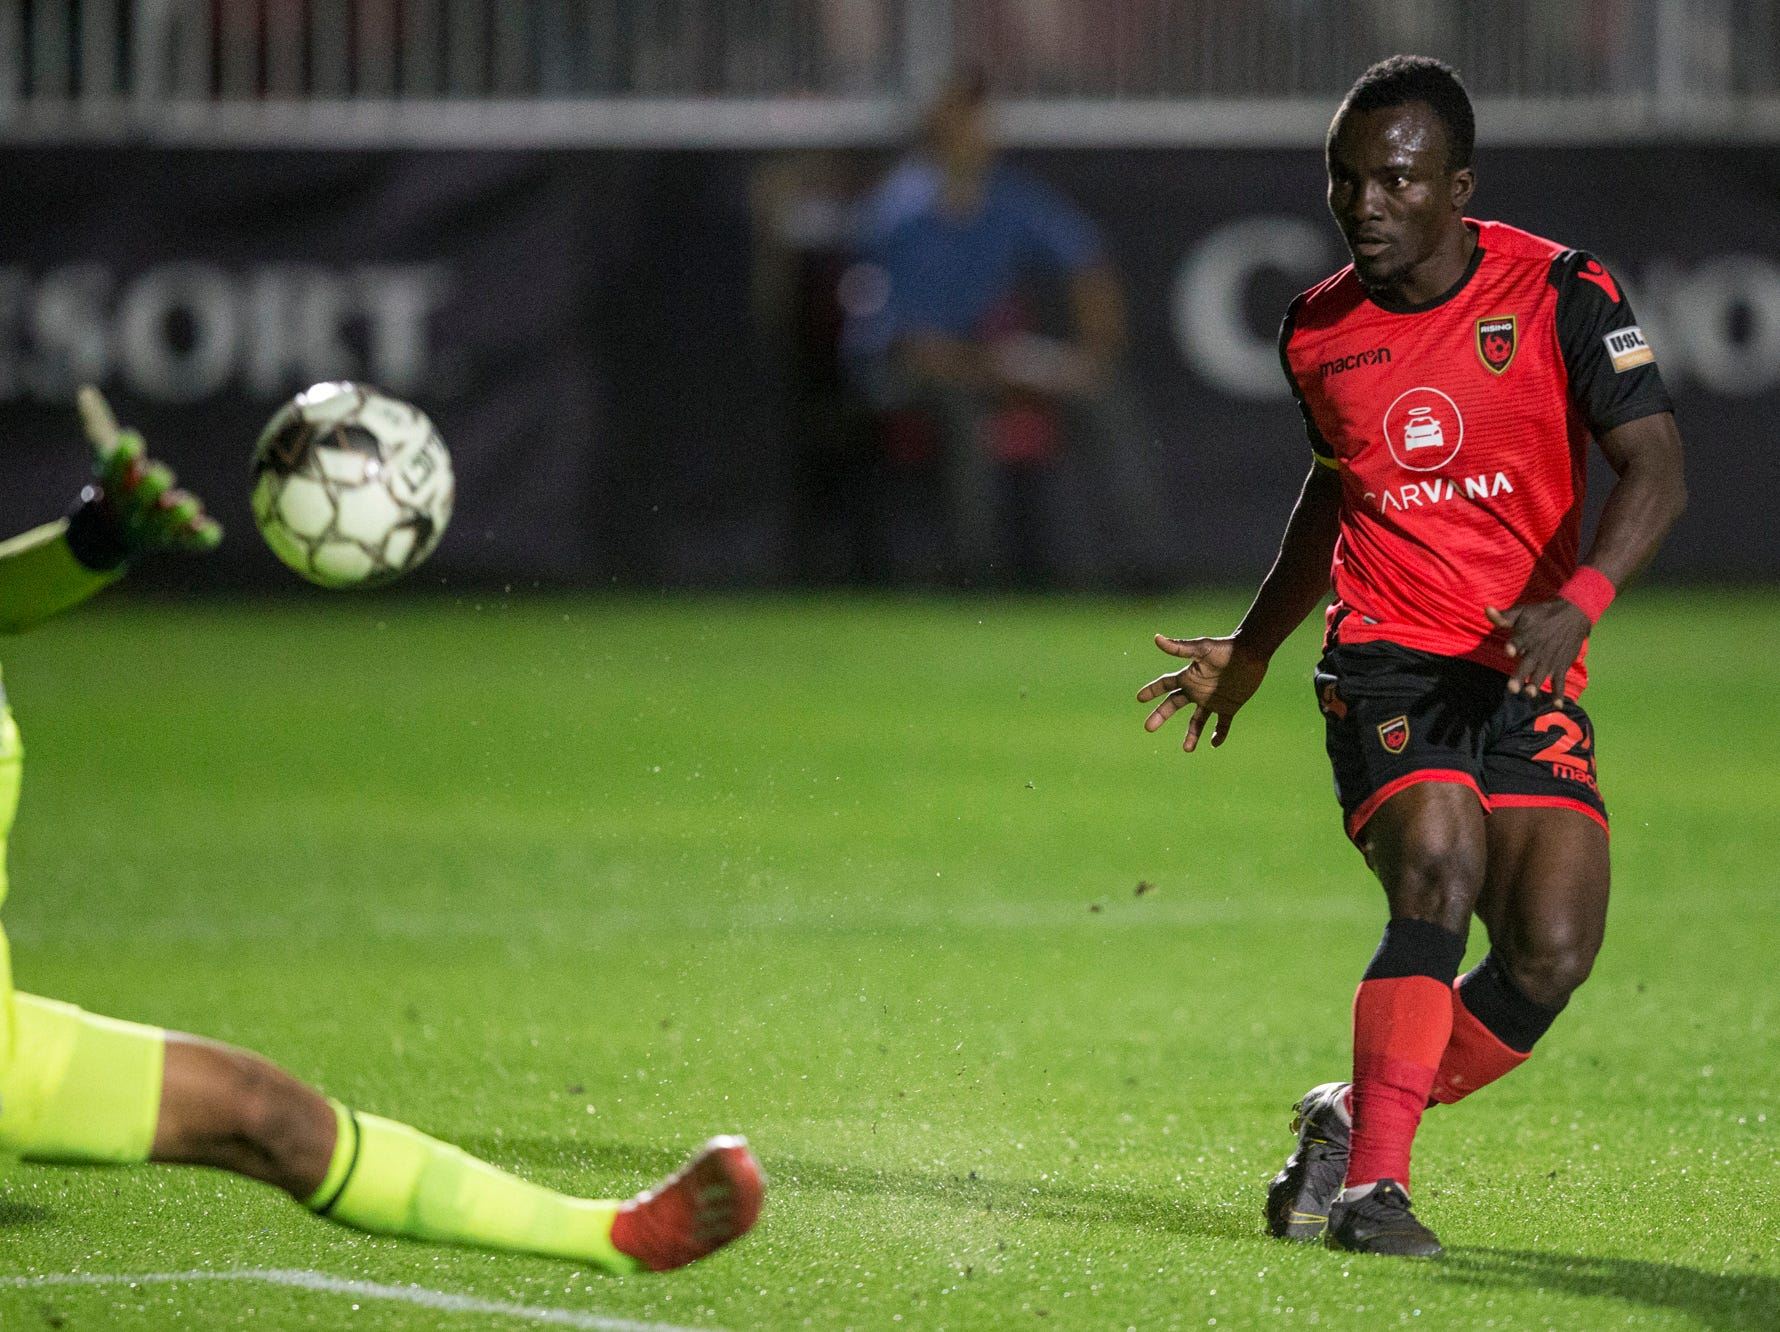 Phoenix Rising's Solomon Asante misses a shot against Colorado Springs in the first half on Saturday, Mar. 30, 2019, at Casino Arizona Field in Tempe, Ariz.